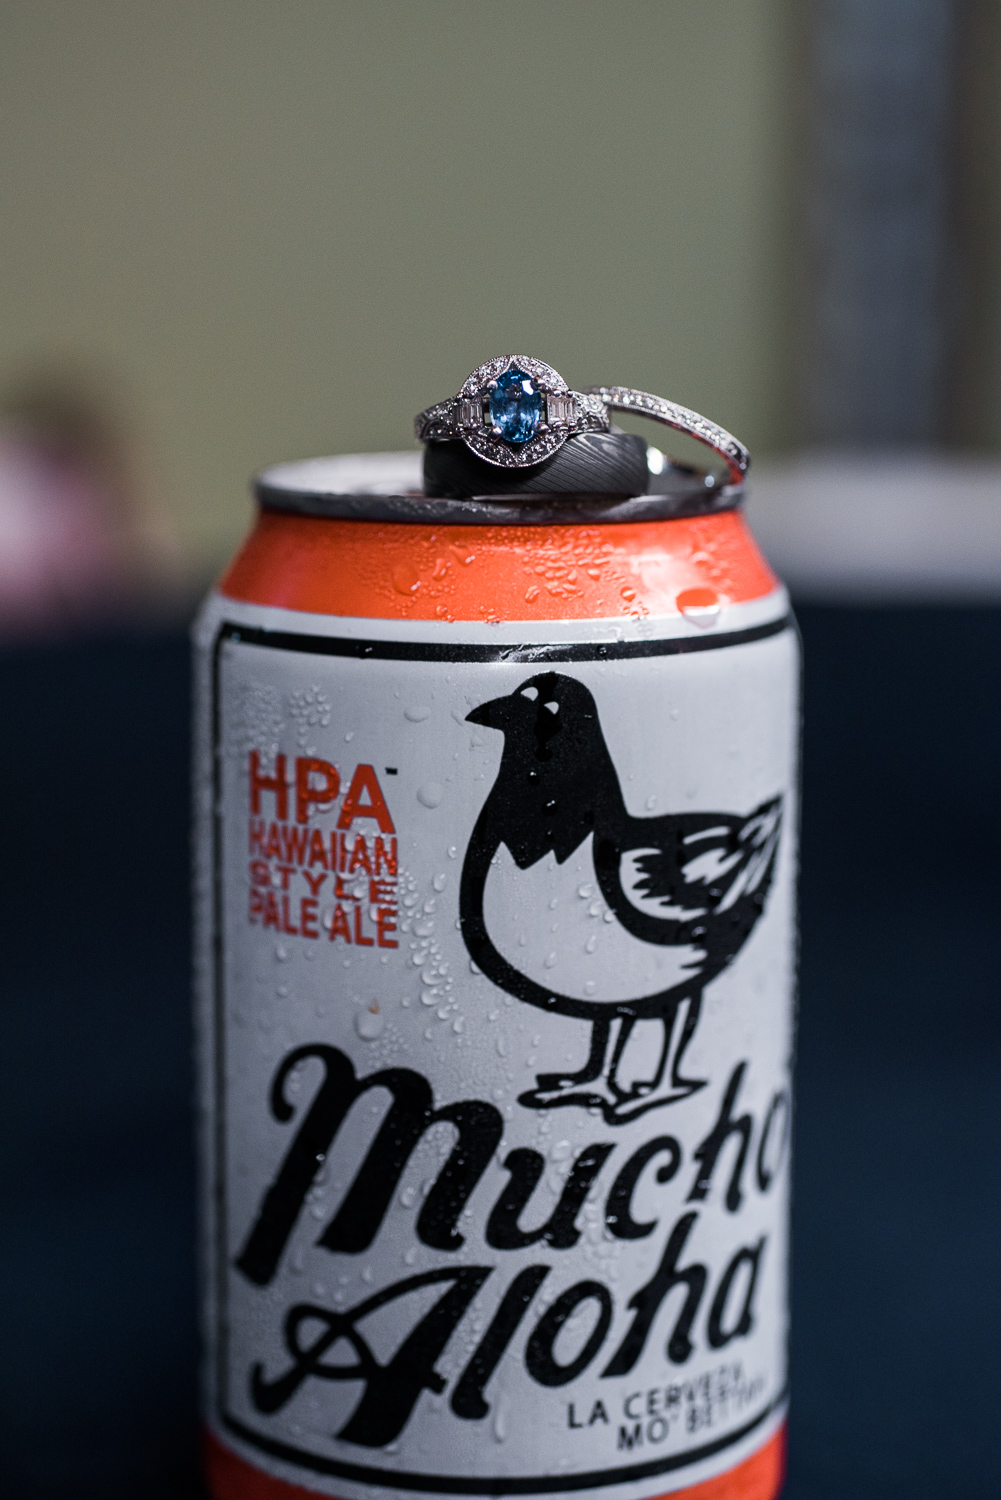 Wedding ring on Mucho Lucha beer can